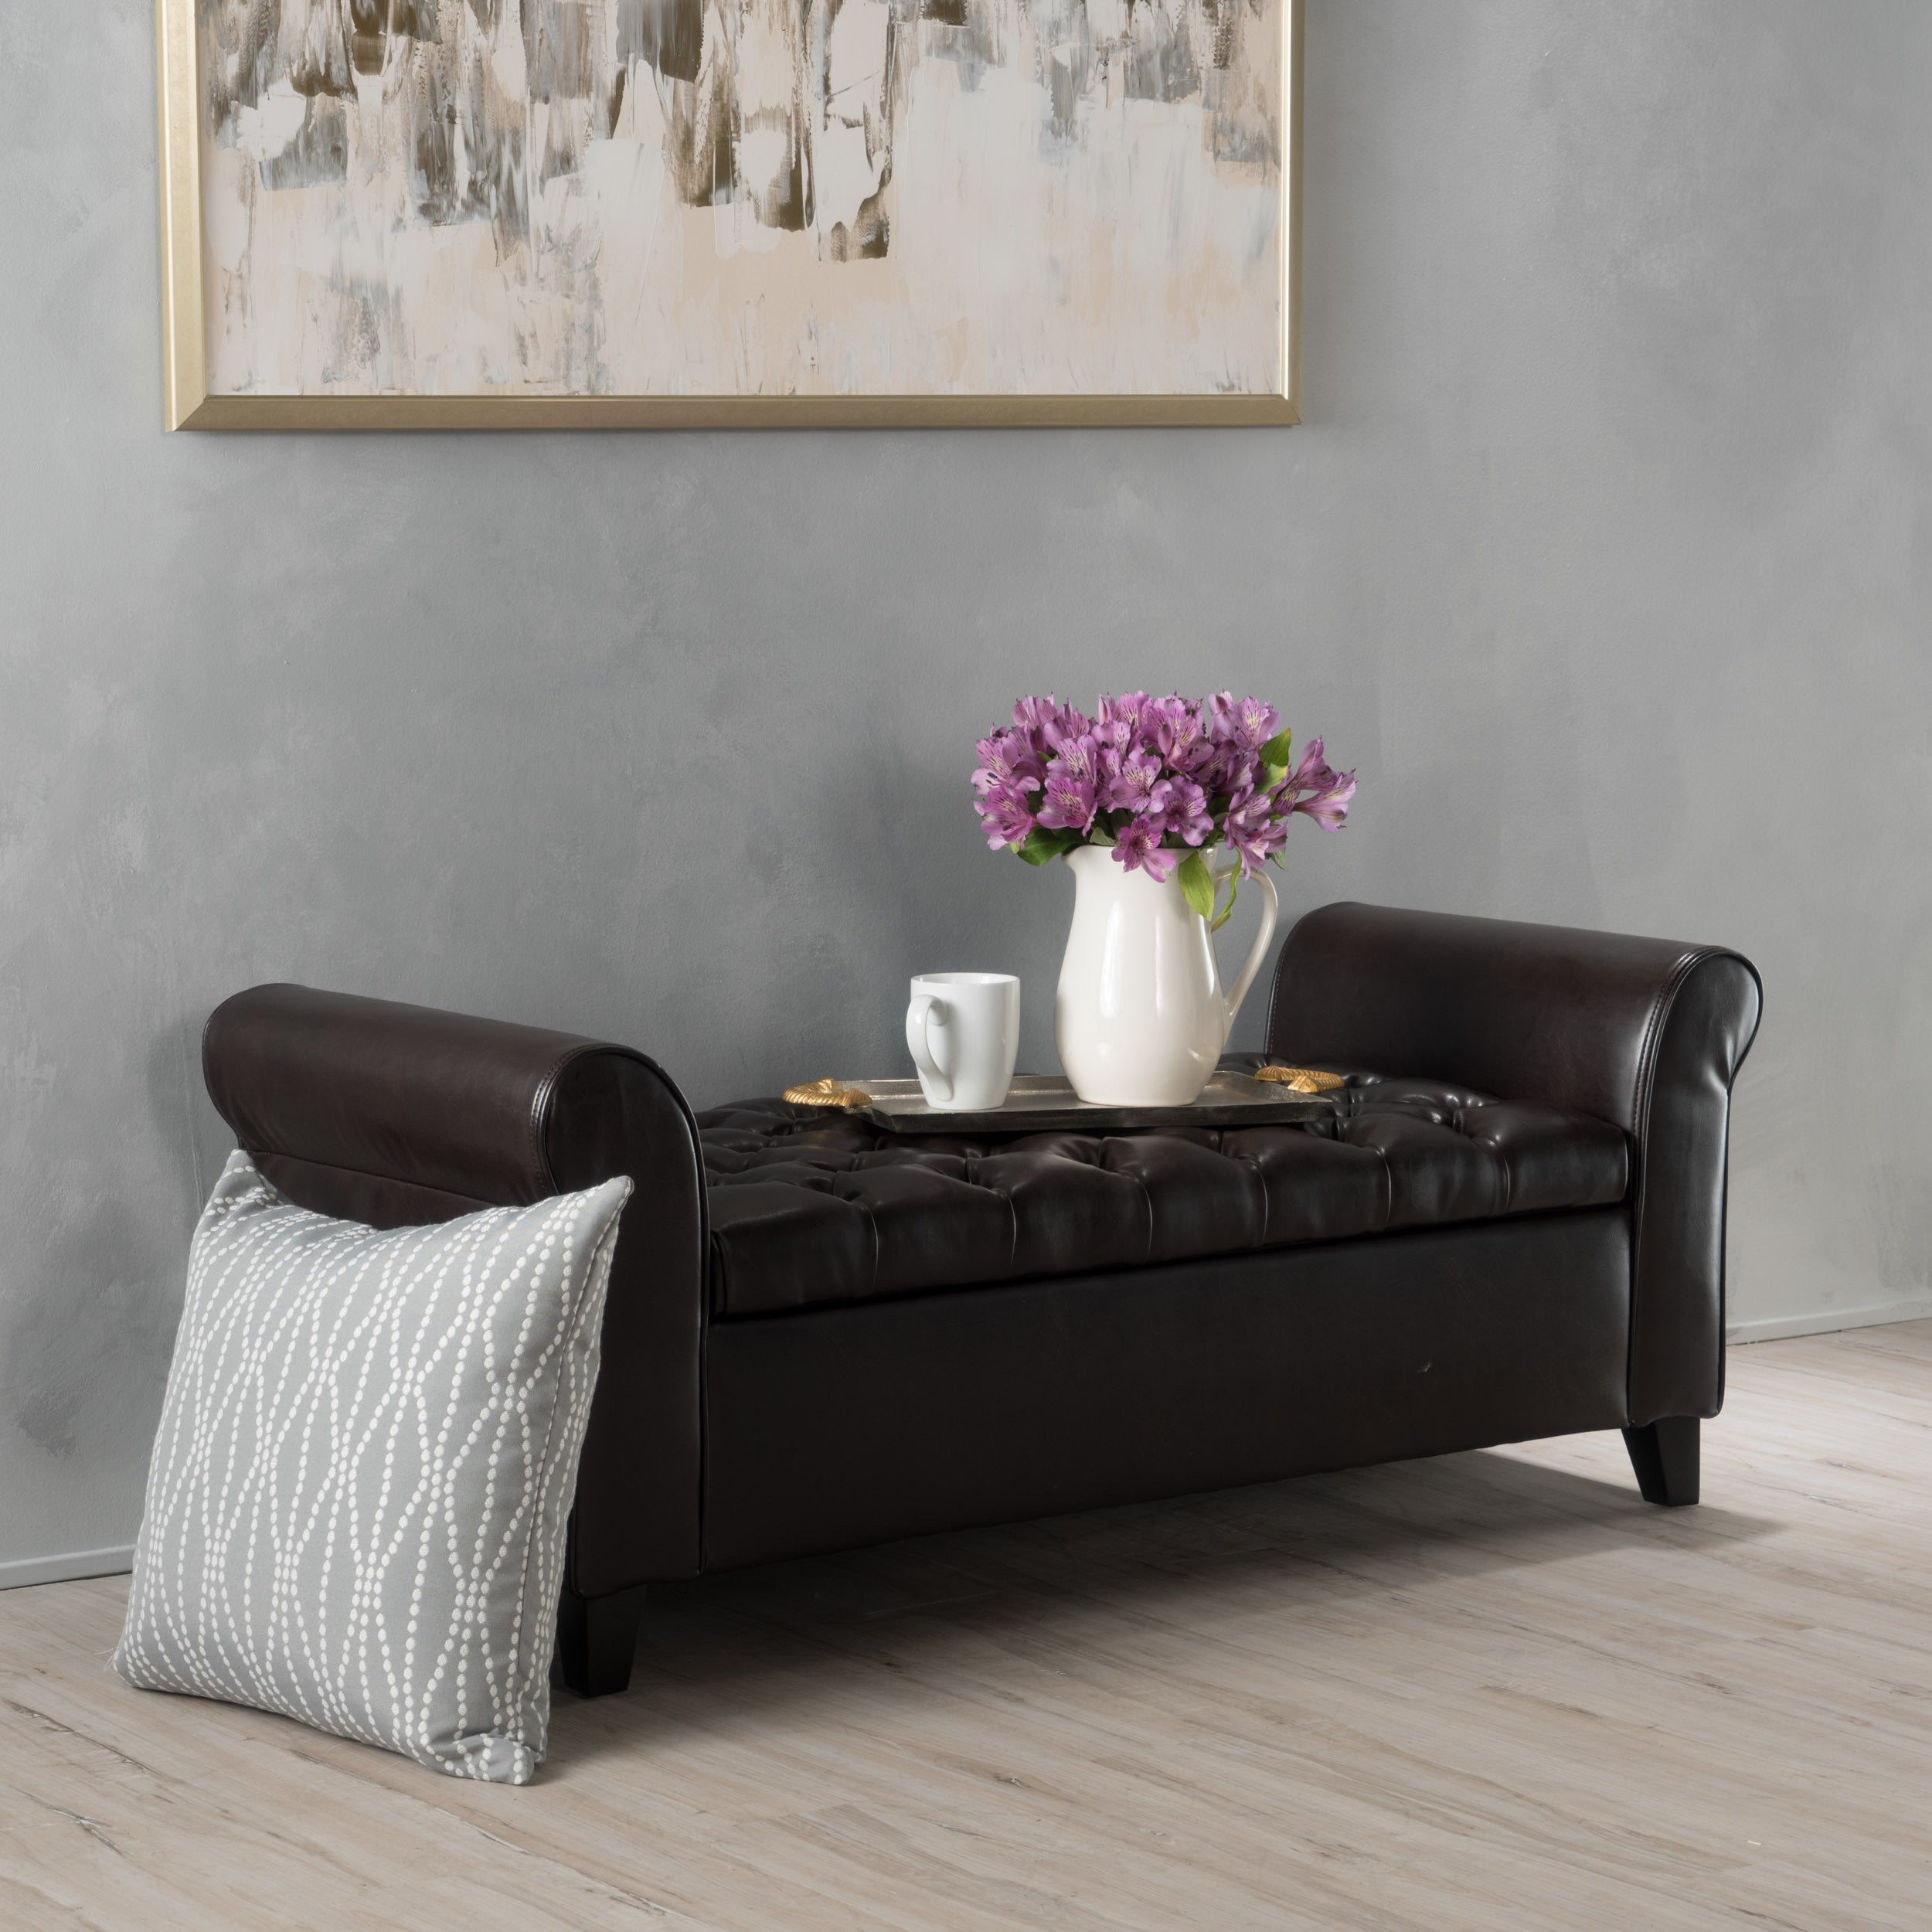 Details about Storage Ottoman Brown Wood Frame Faux Leather Rectangle  Living Room Furniture US